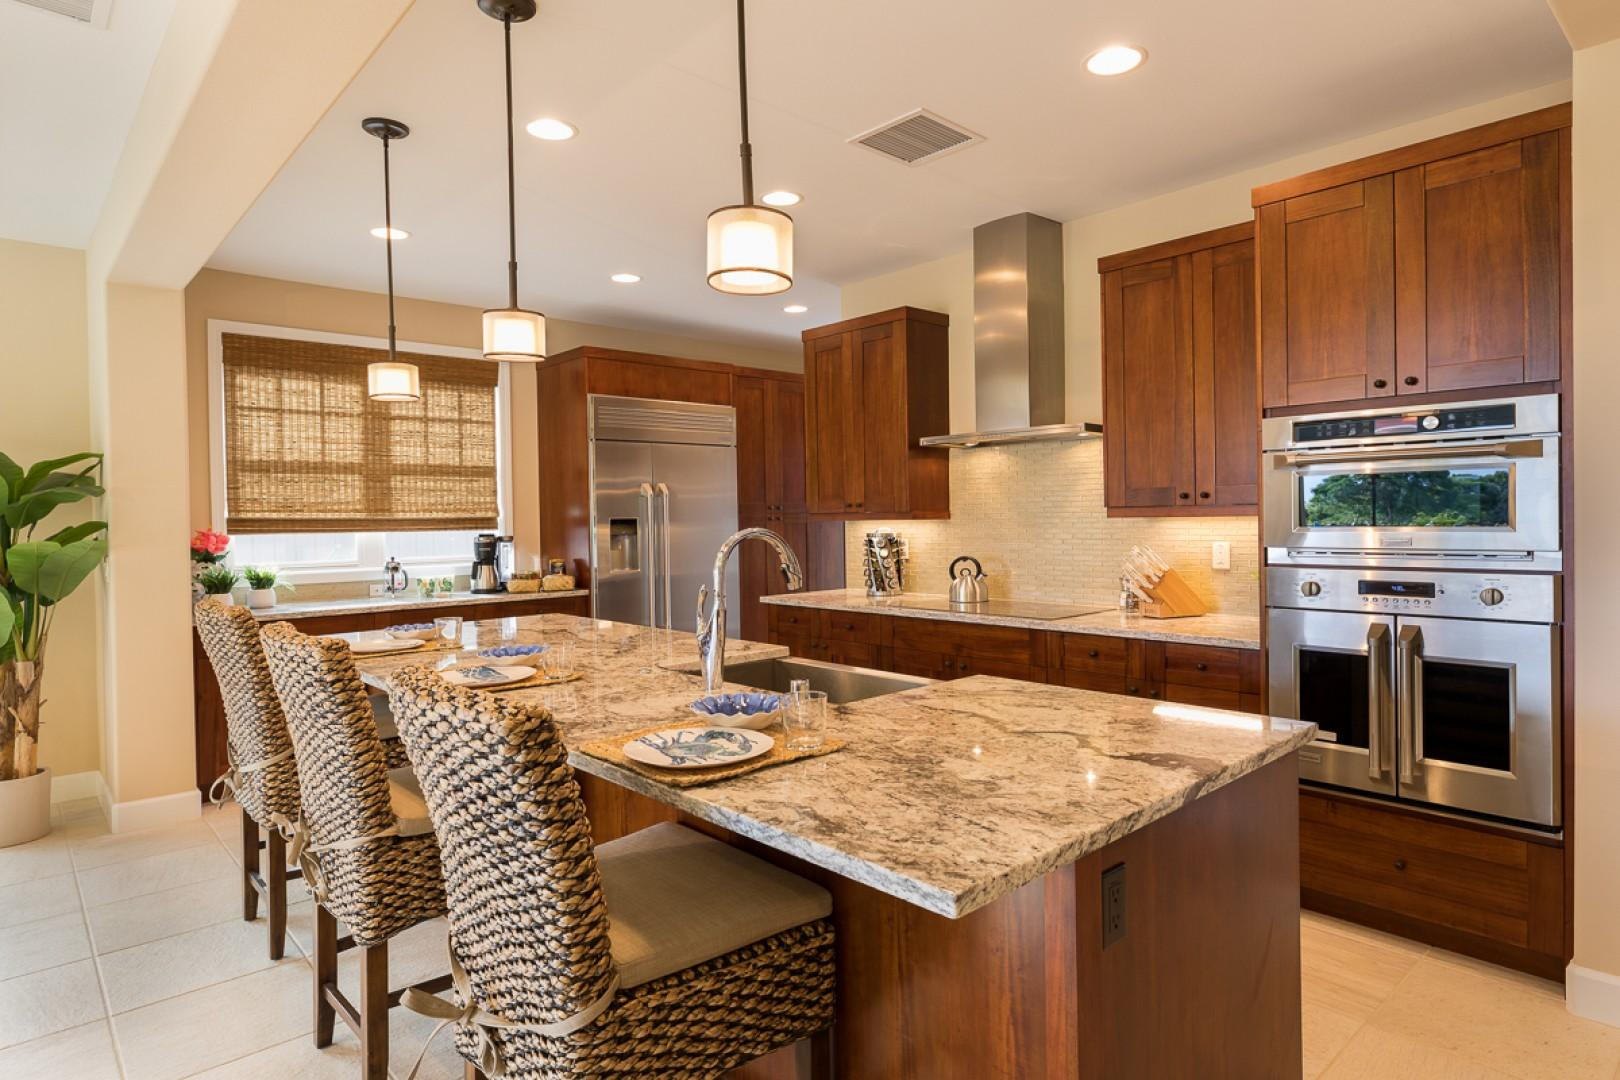 The open, modern kitchen features bar seating